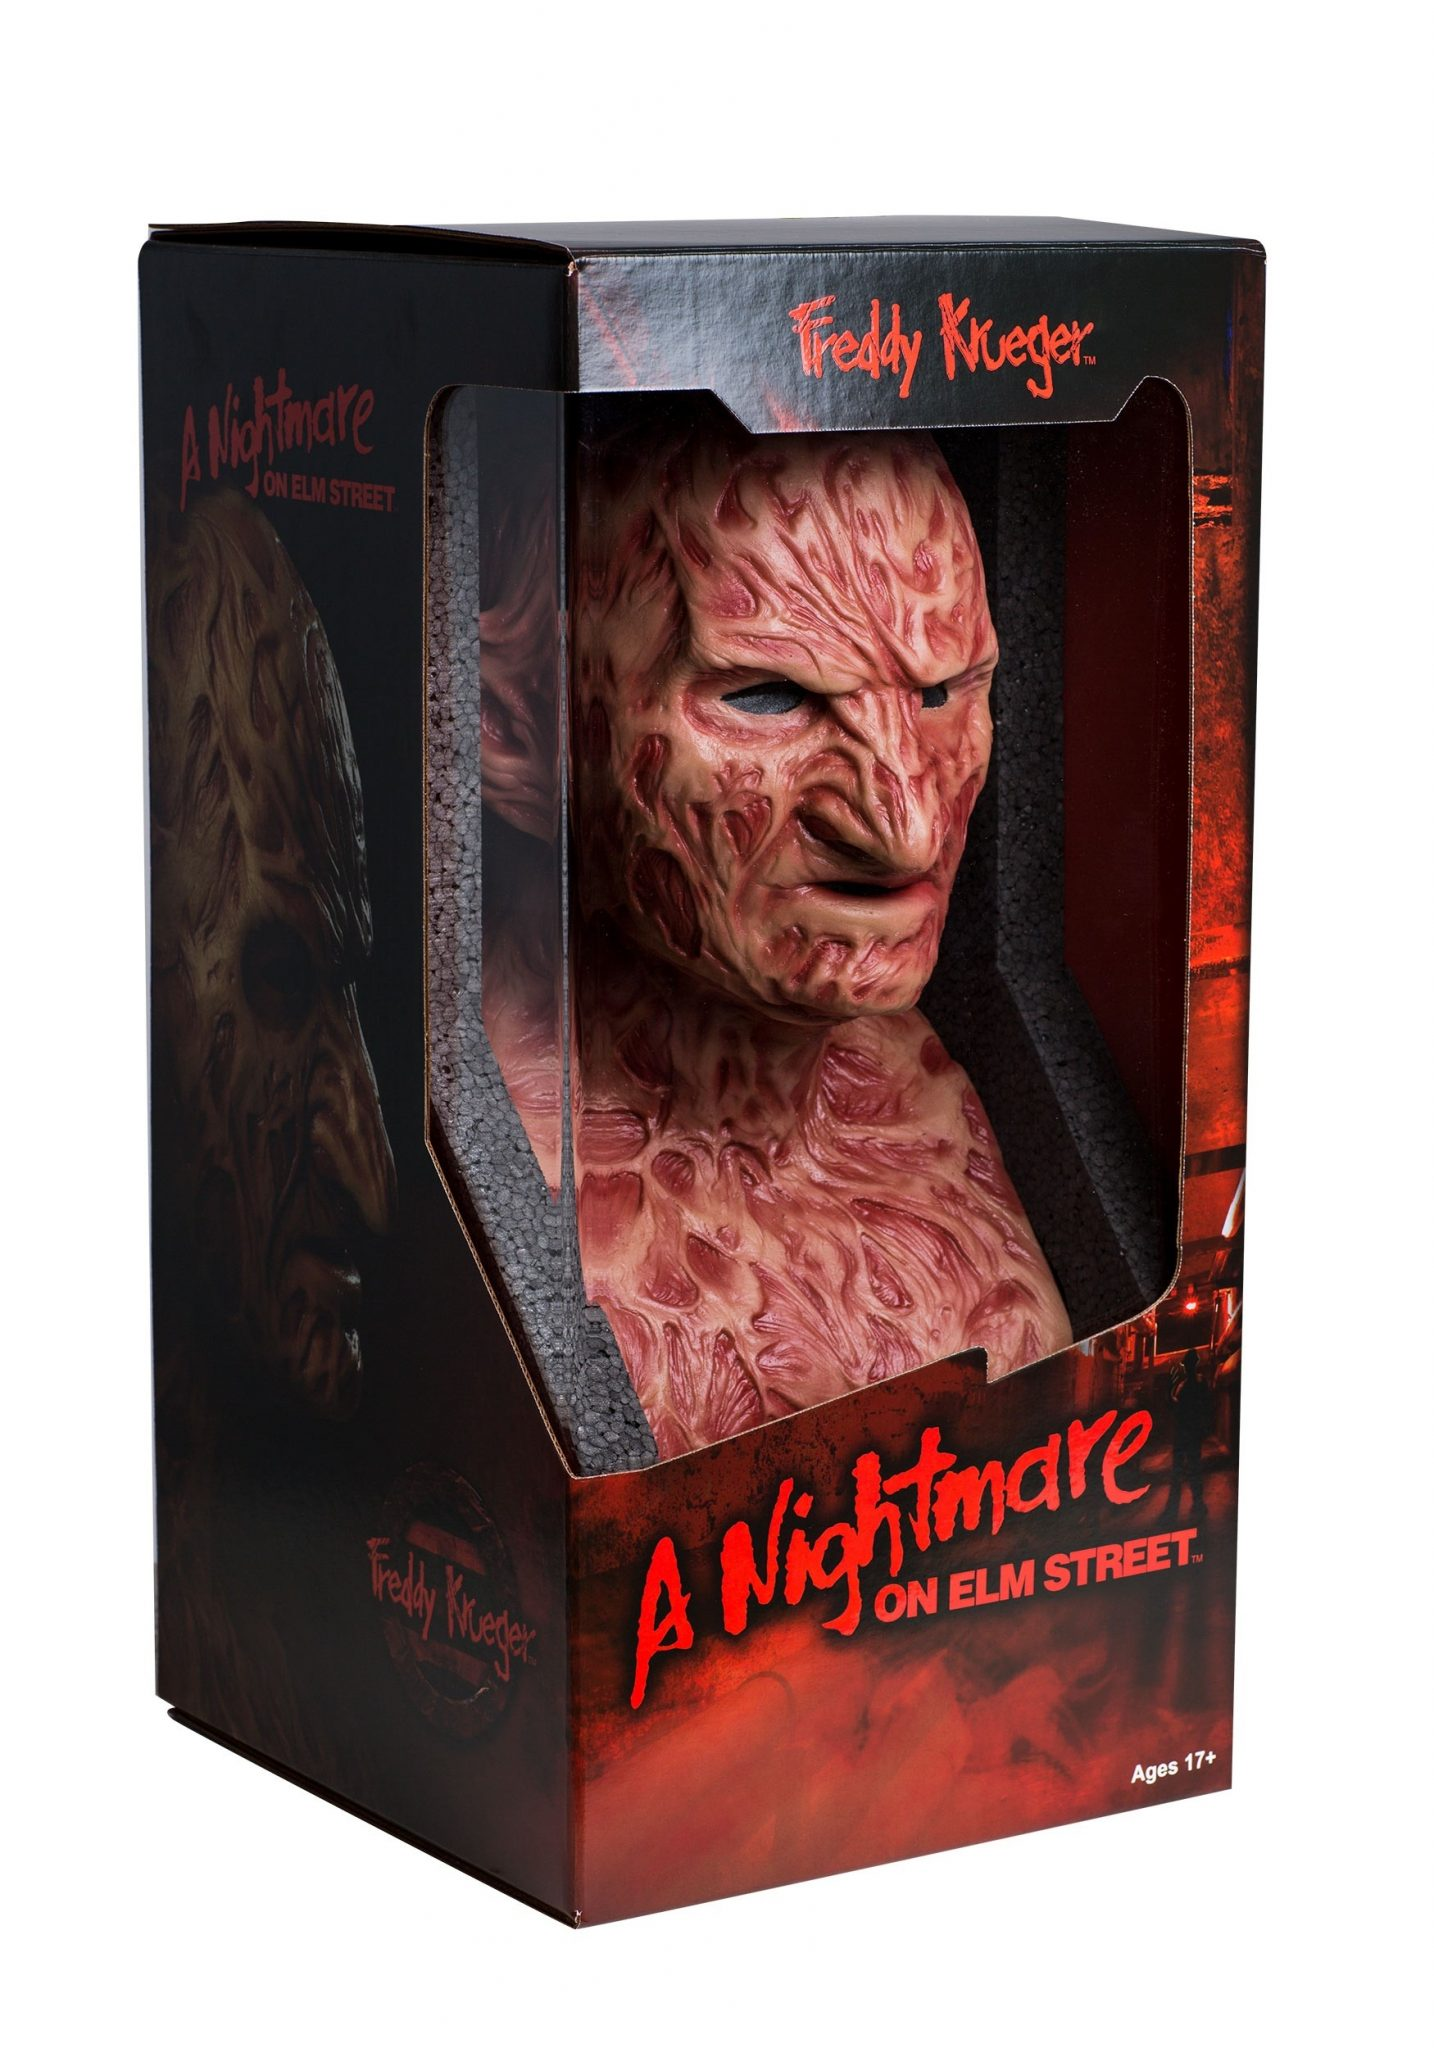 freddy krueger collectors mask box - See The ULTIMATE Freddy Krueger Mask!